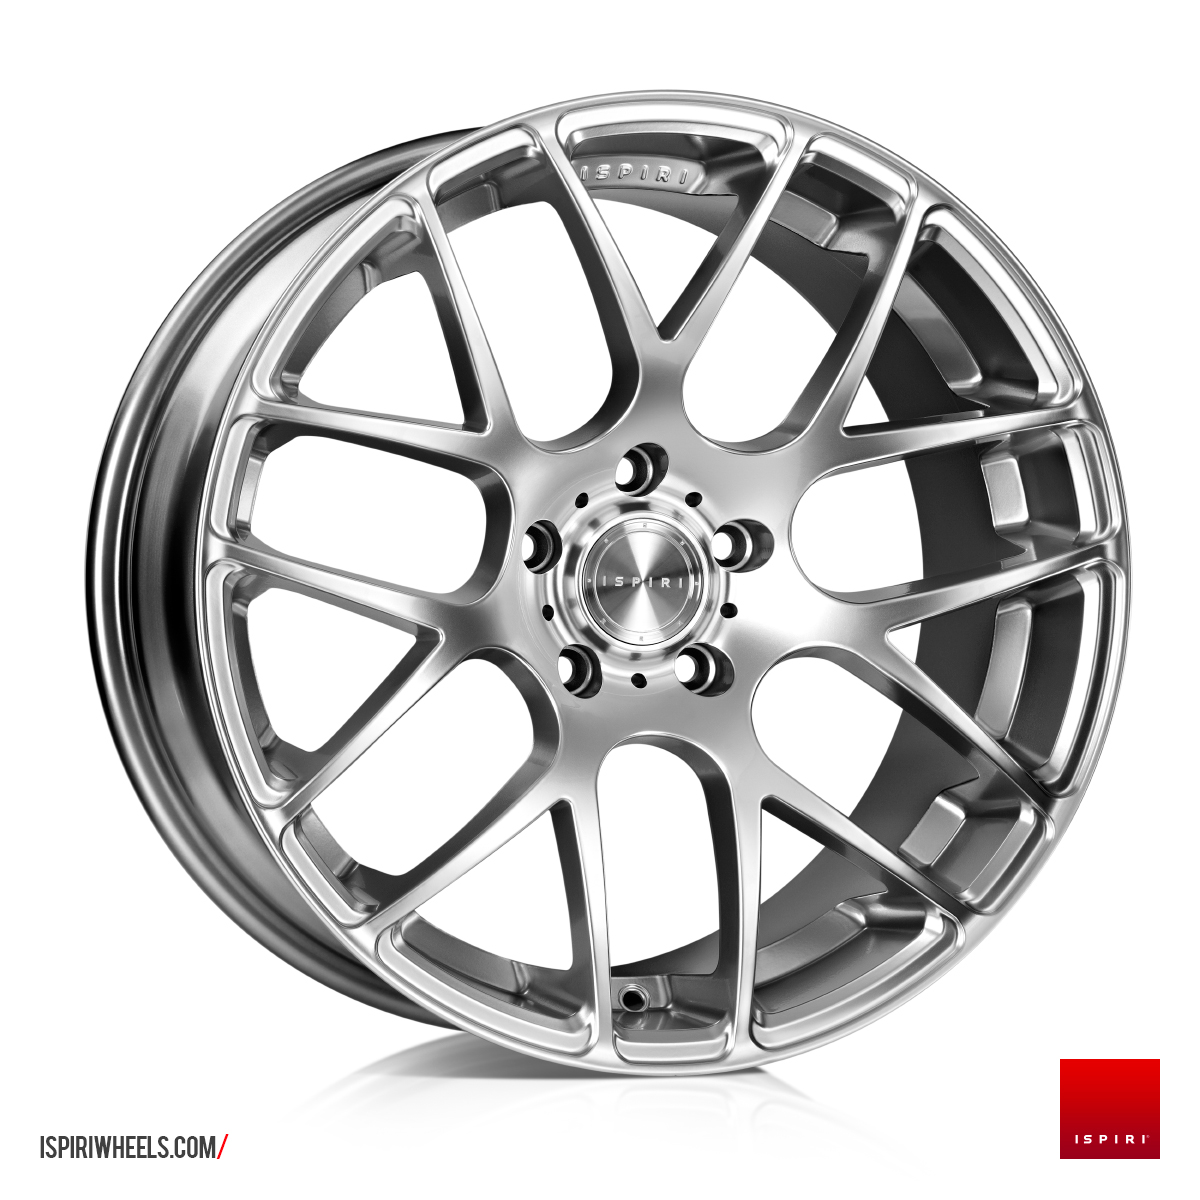 "NEW 20"" ISPIRI ISR1 CROSS SPOKE ALLOYS IN DIAMOND SILVER, WIDER 10"" REAR"